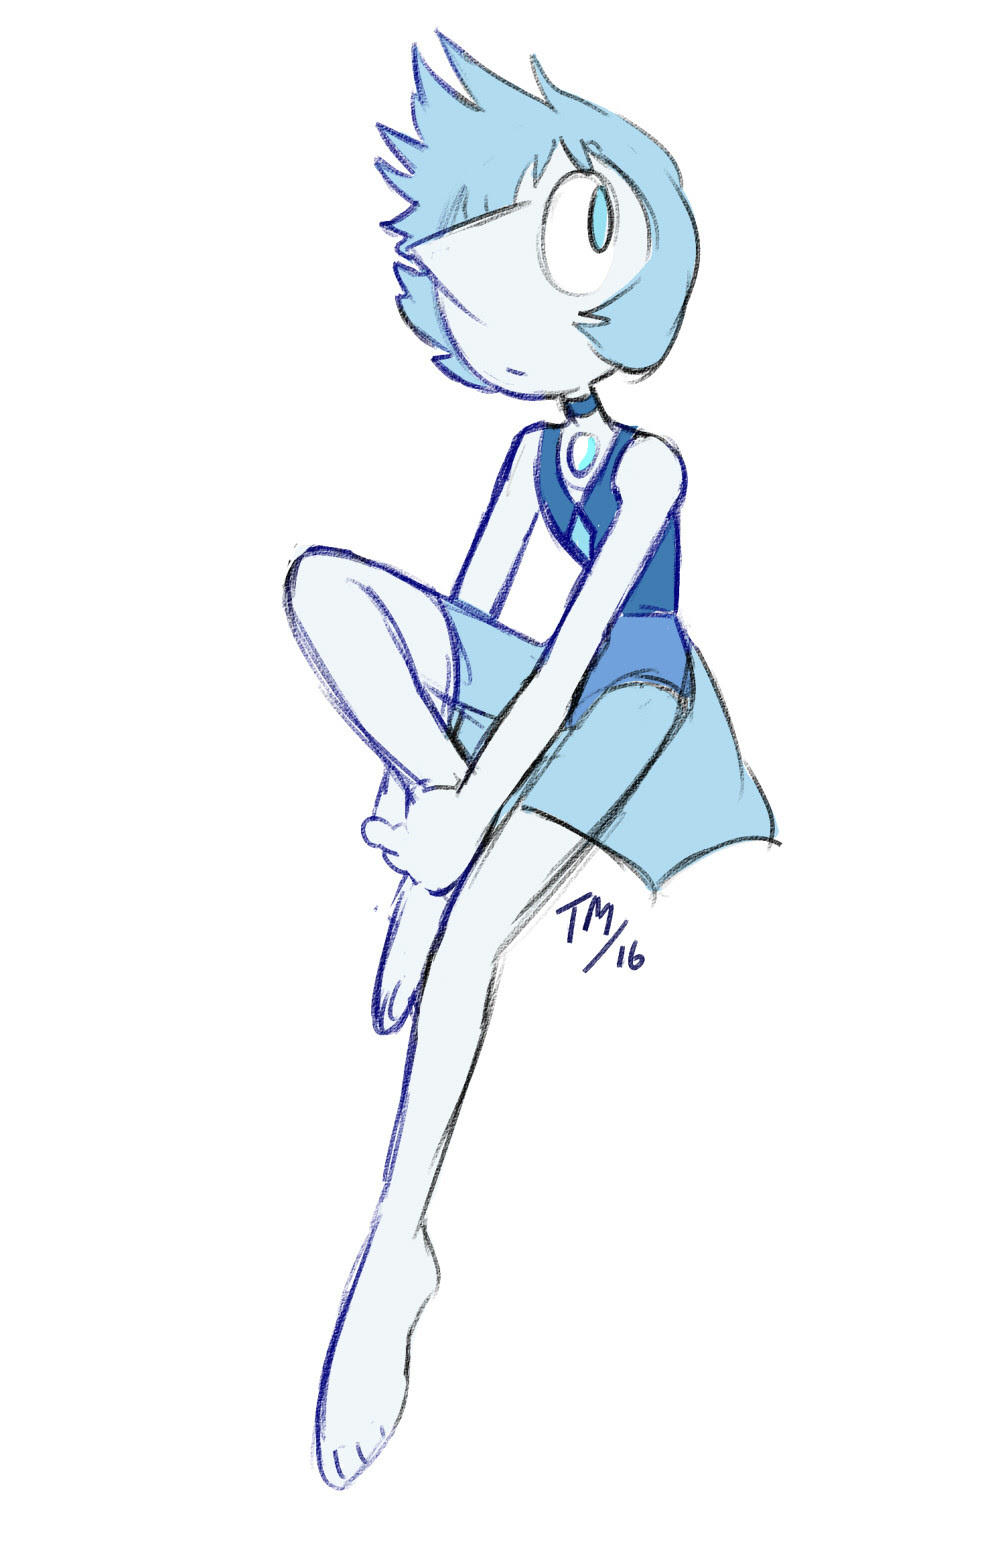 here's a drawing of my pearl oc!